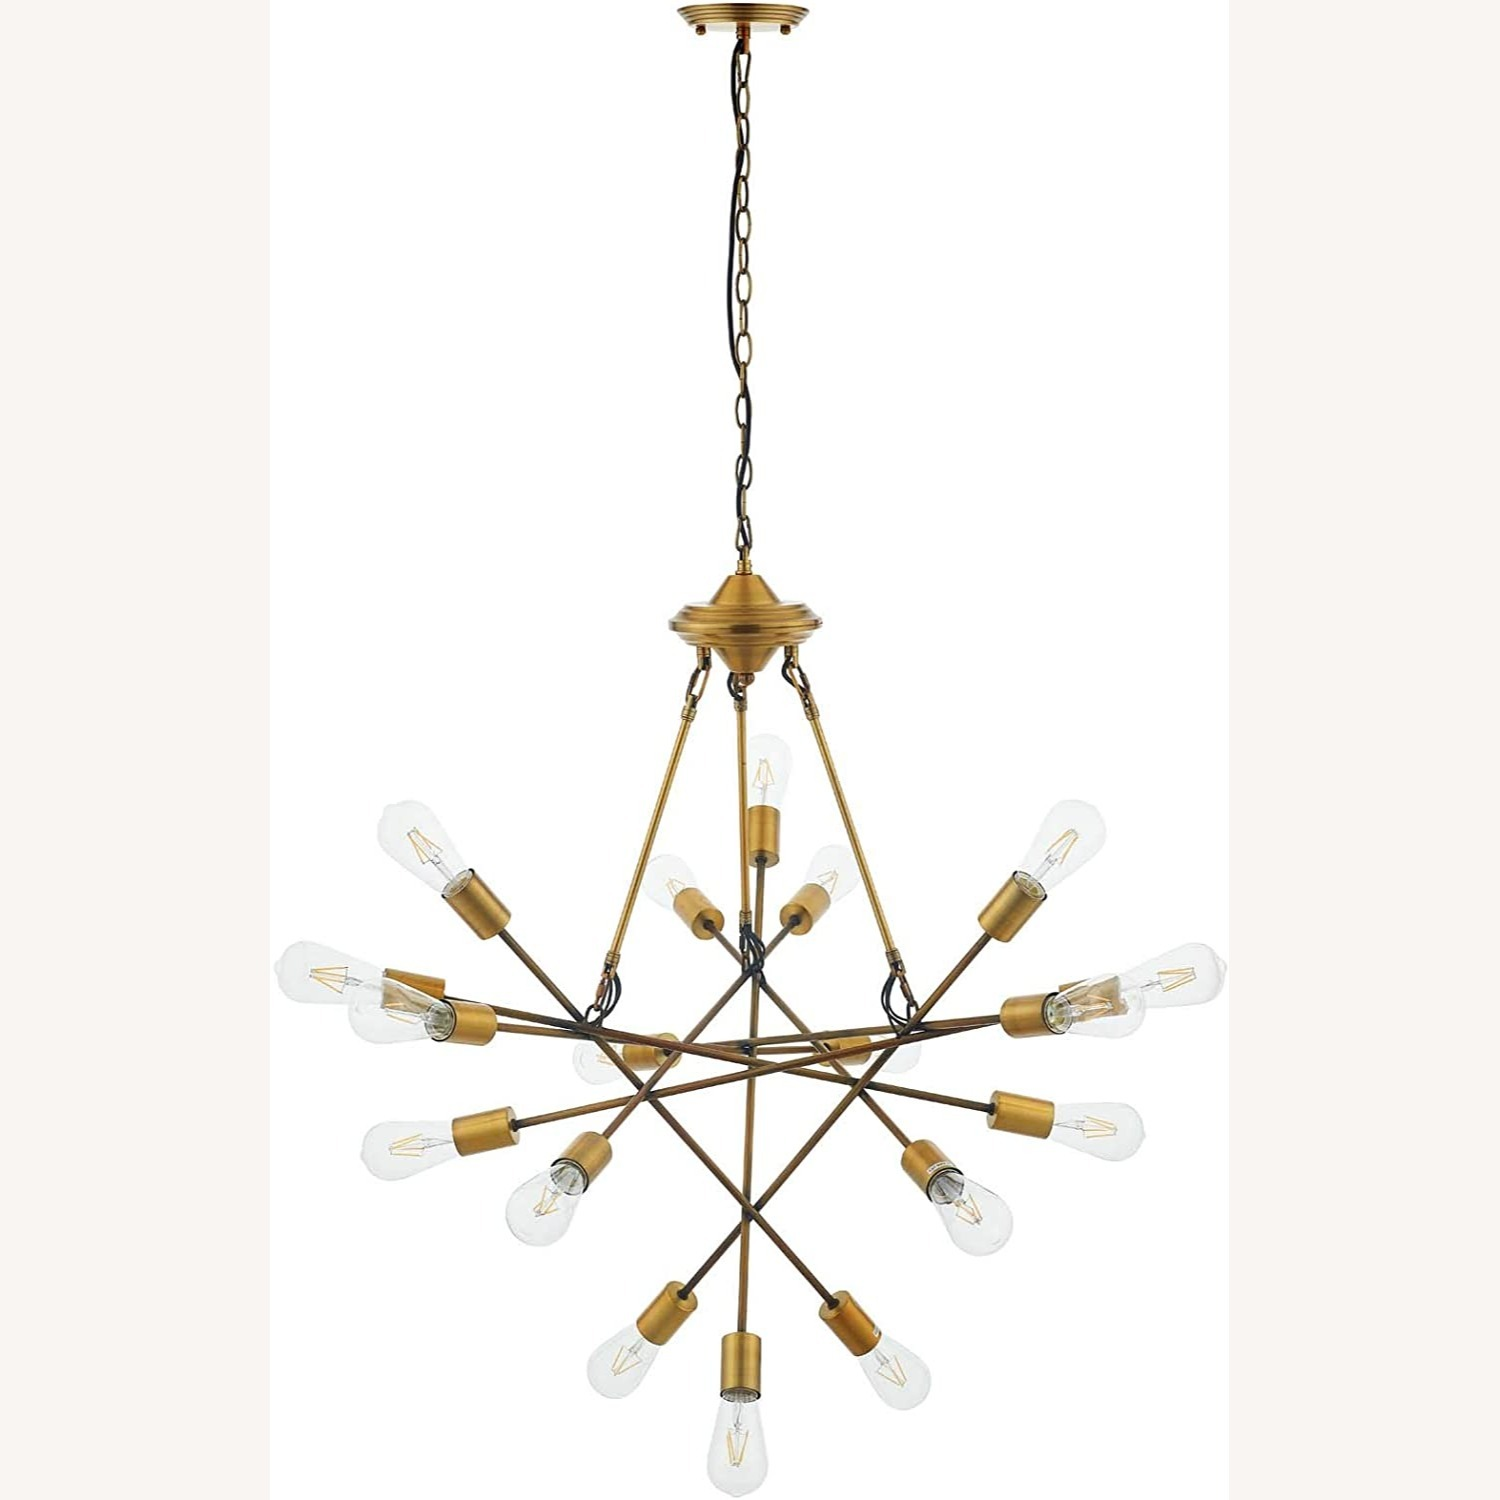 Mid-Century Style Chandelier In Antique Brass - image-0